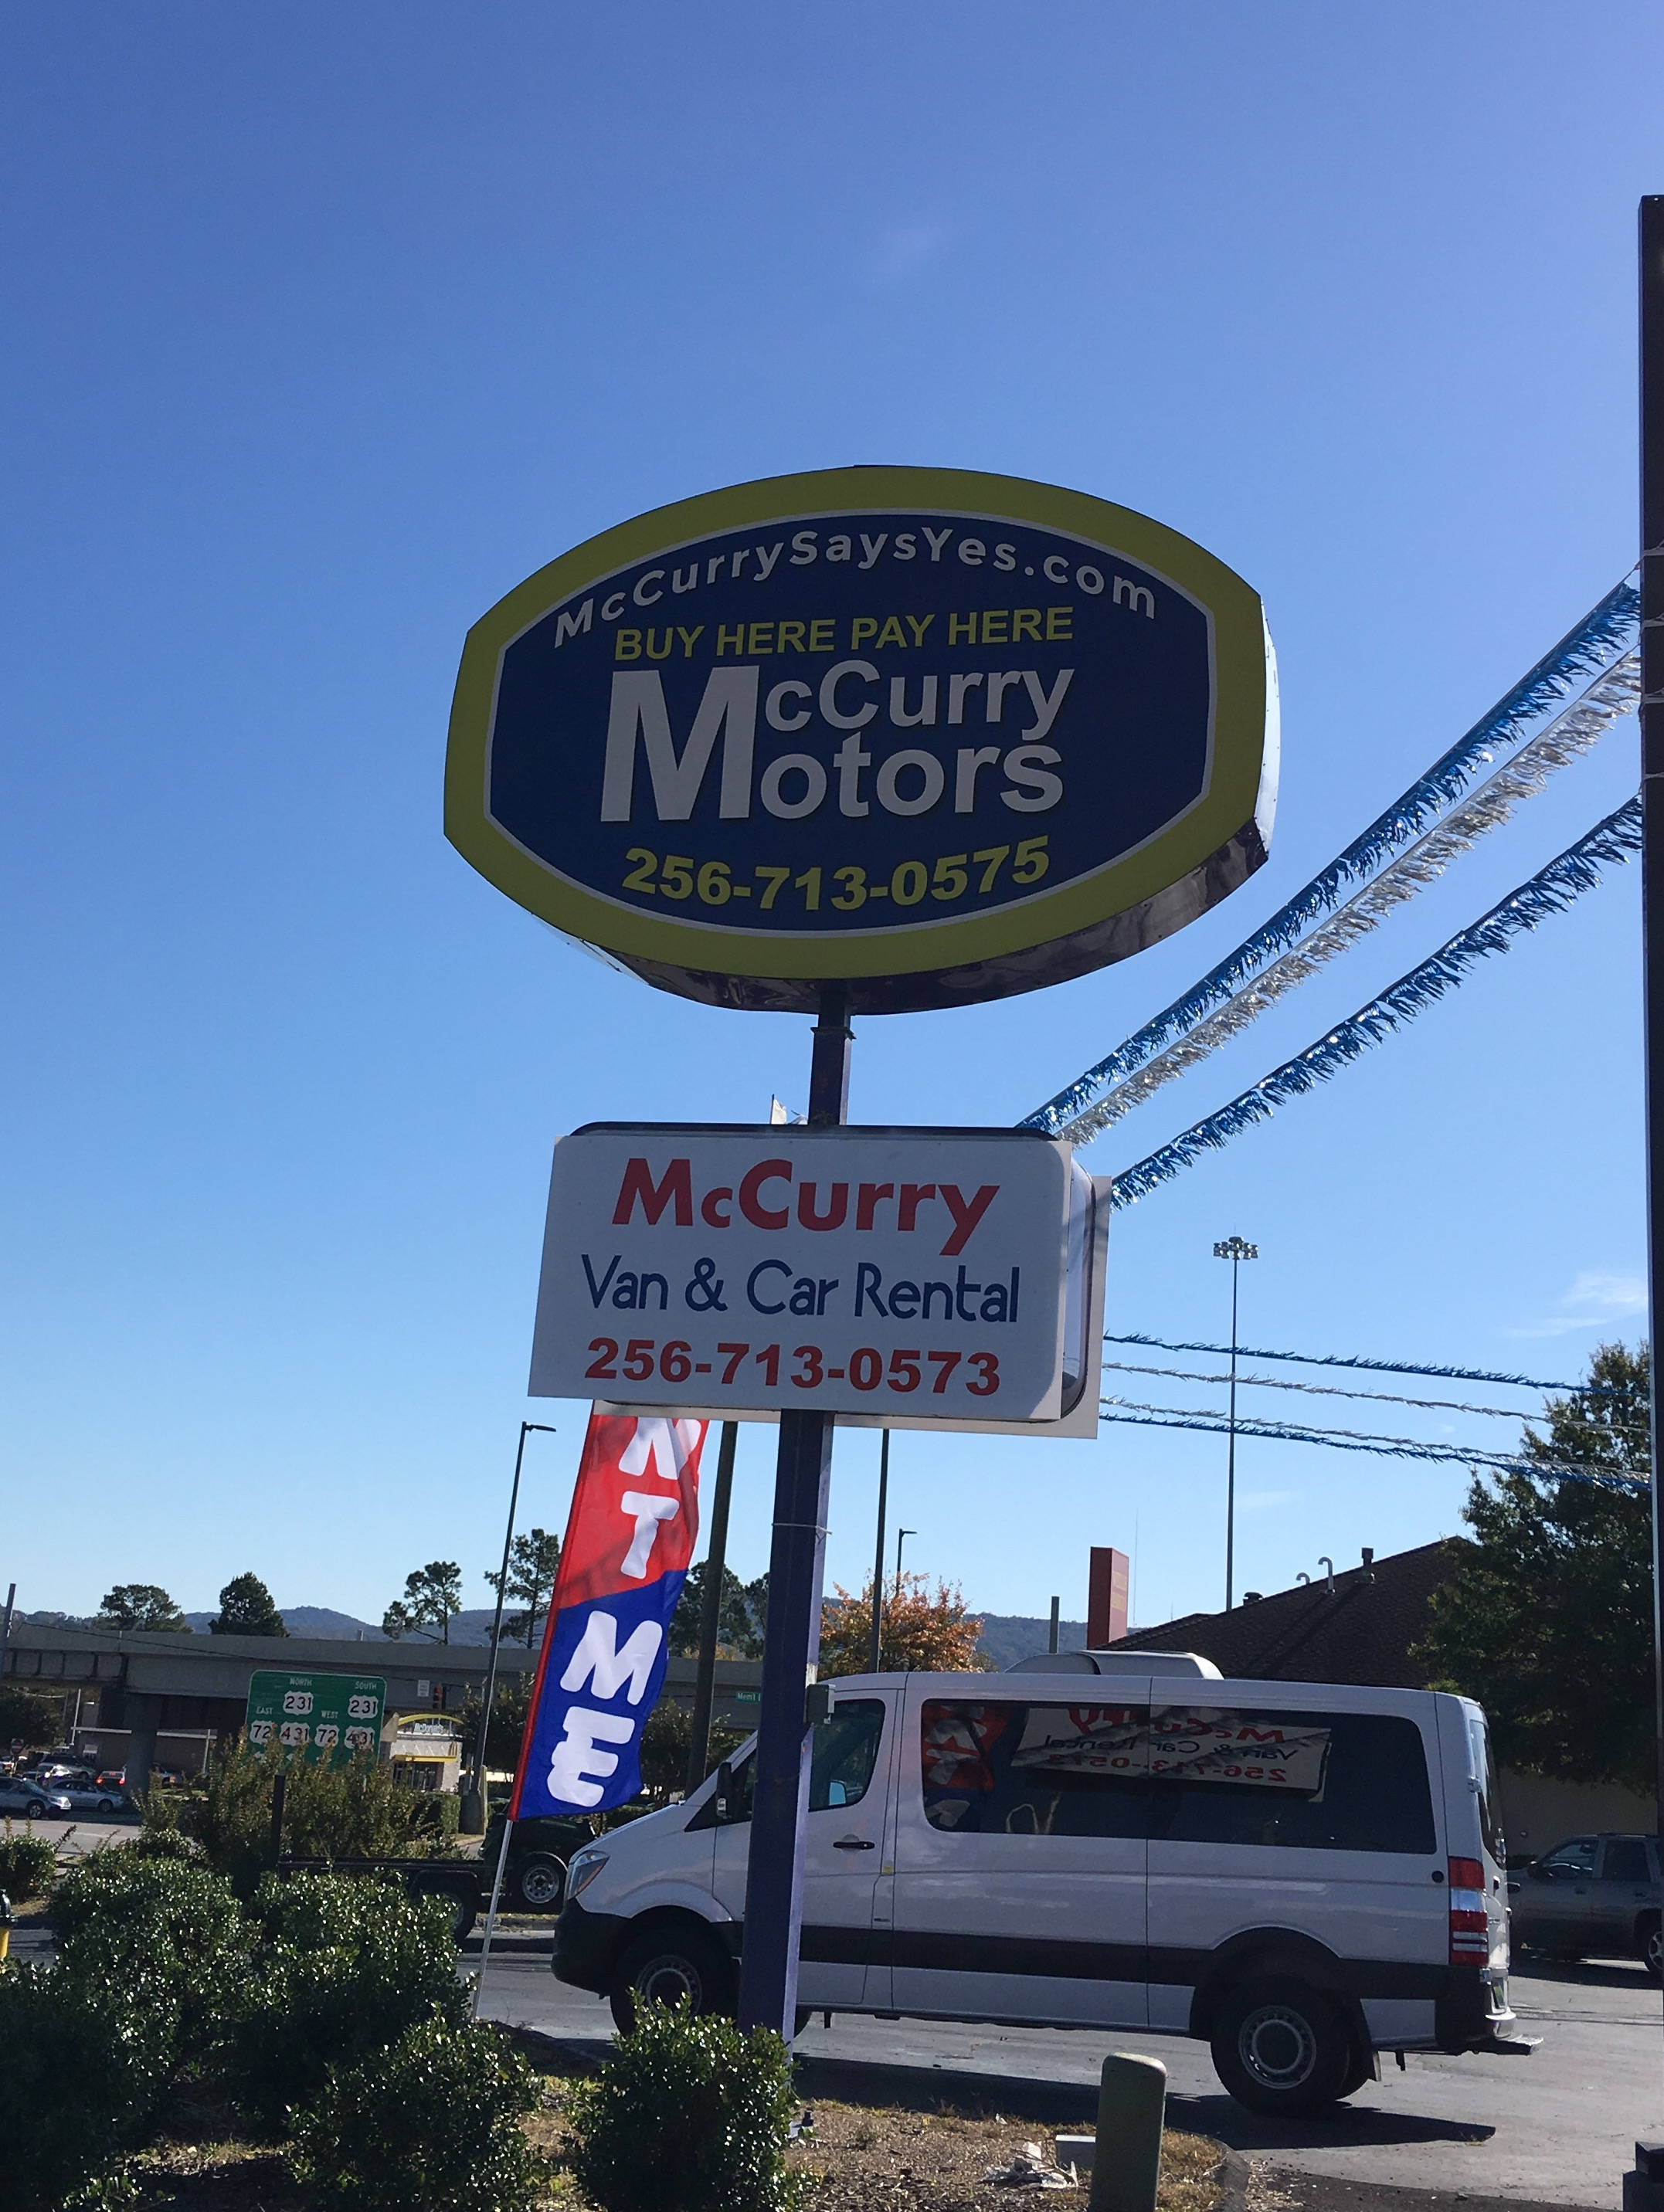 news and events at mccurry van car rental in huntsville al mccurry van car rental